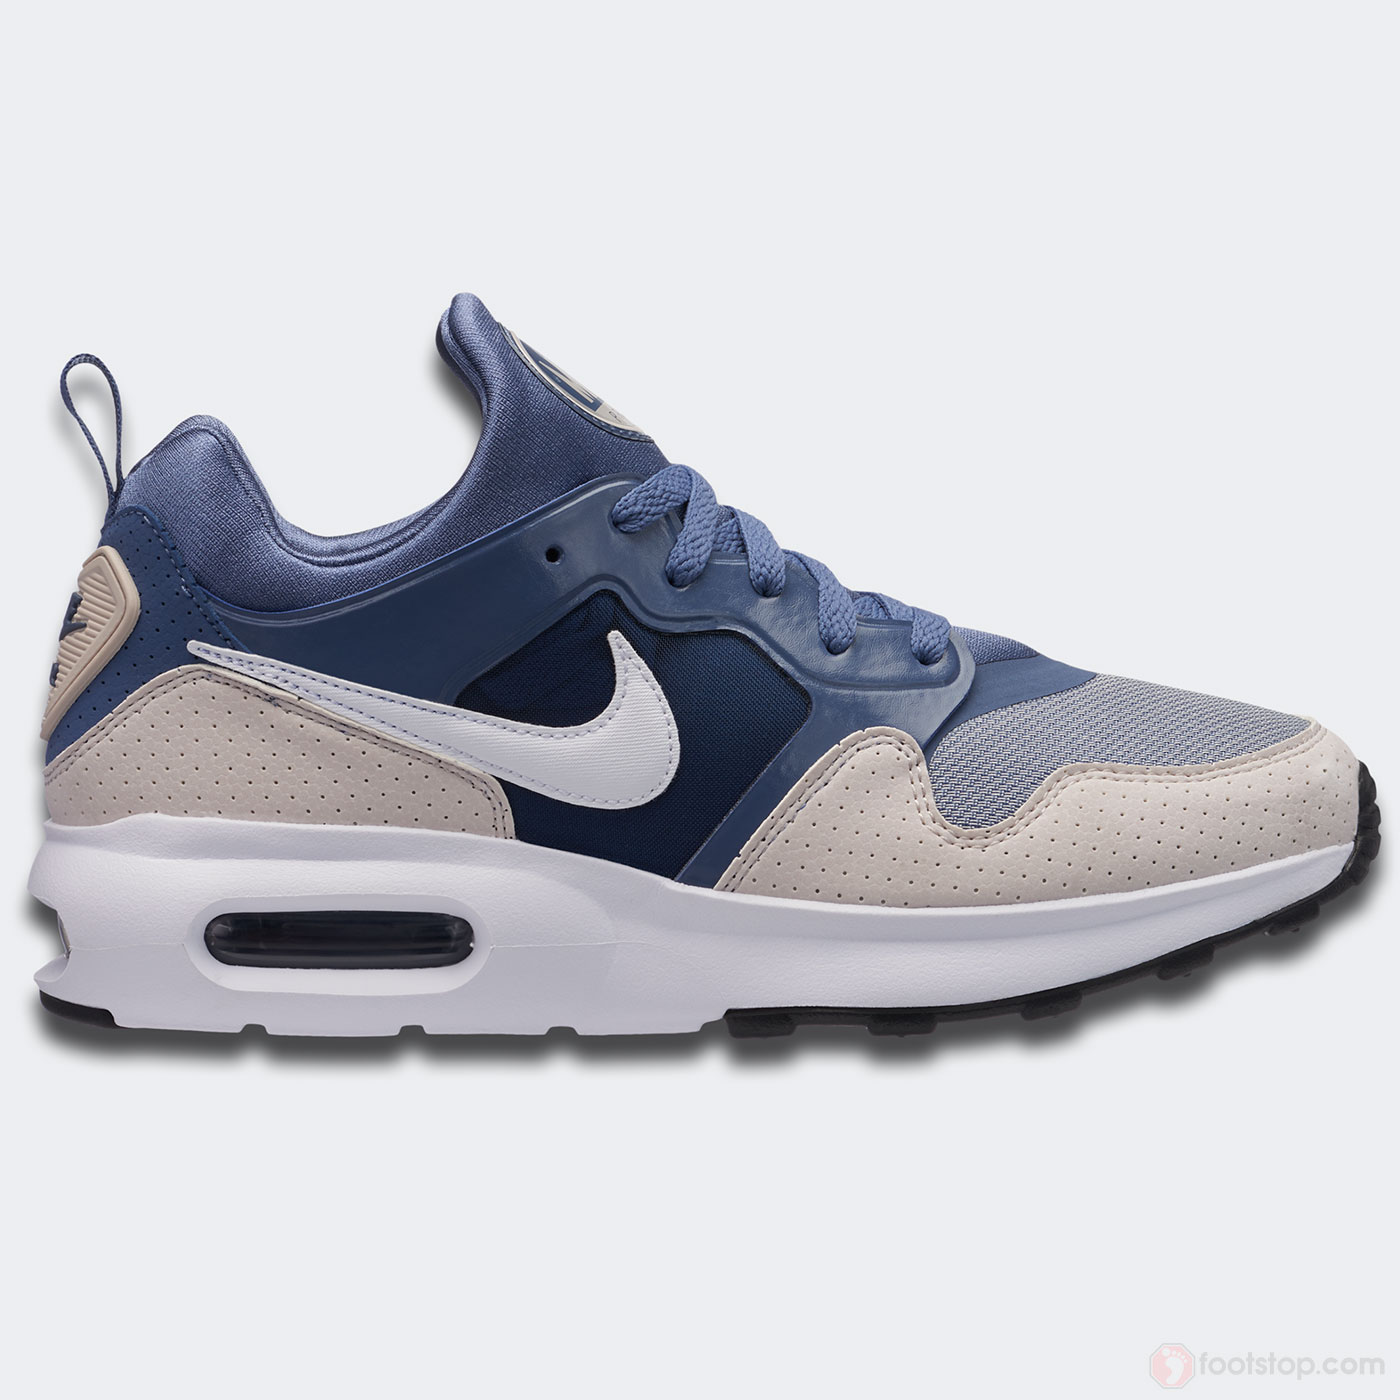 Prime876068 Nike Max Nike Air 405Footstop Air Max w8XZN0knPO